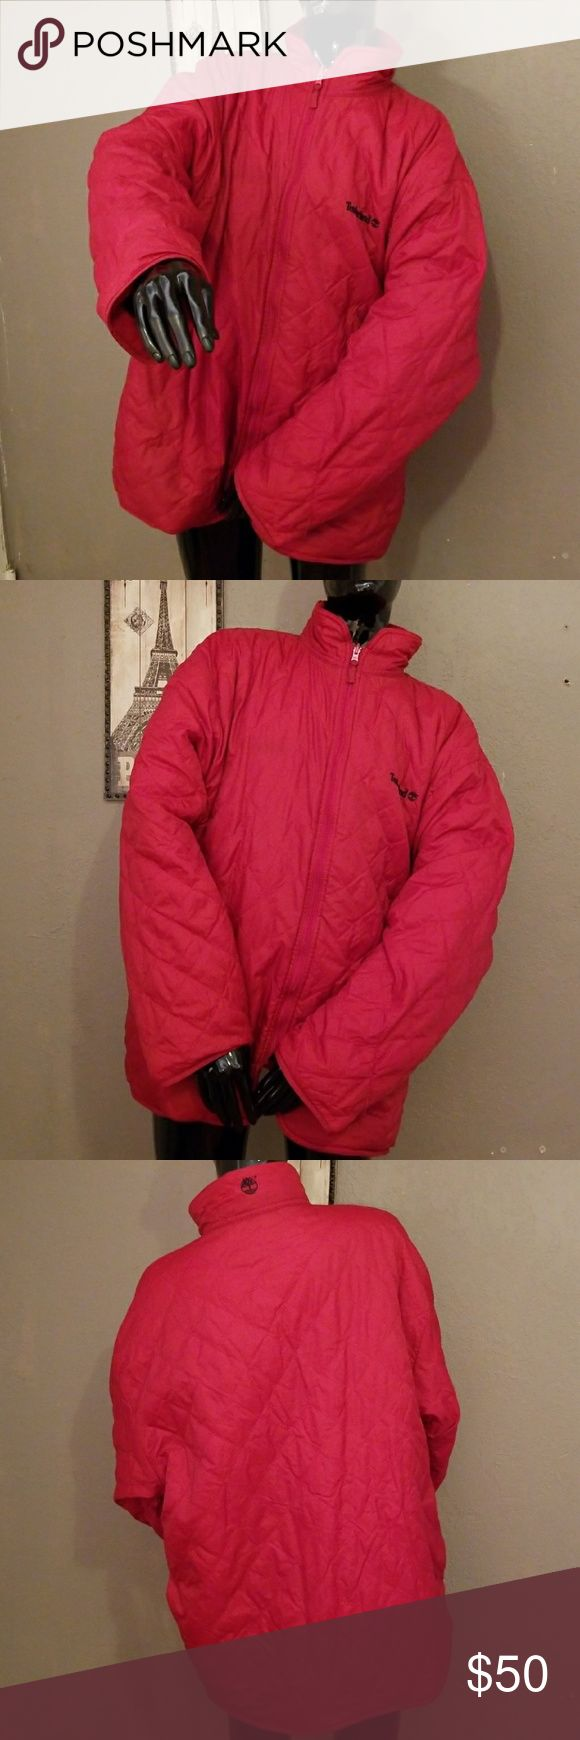 Timberland Jacket TIMBERLAND Warm jacket for men, reversible, great Timberland quality. Two side pockets. Water proof. Large, red. In like new quality. Timberland Jackets & Coats Puffers